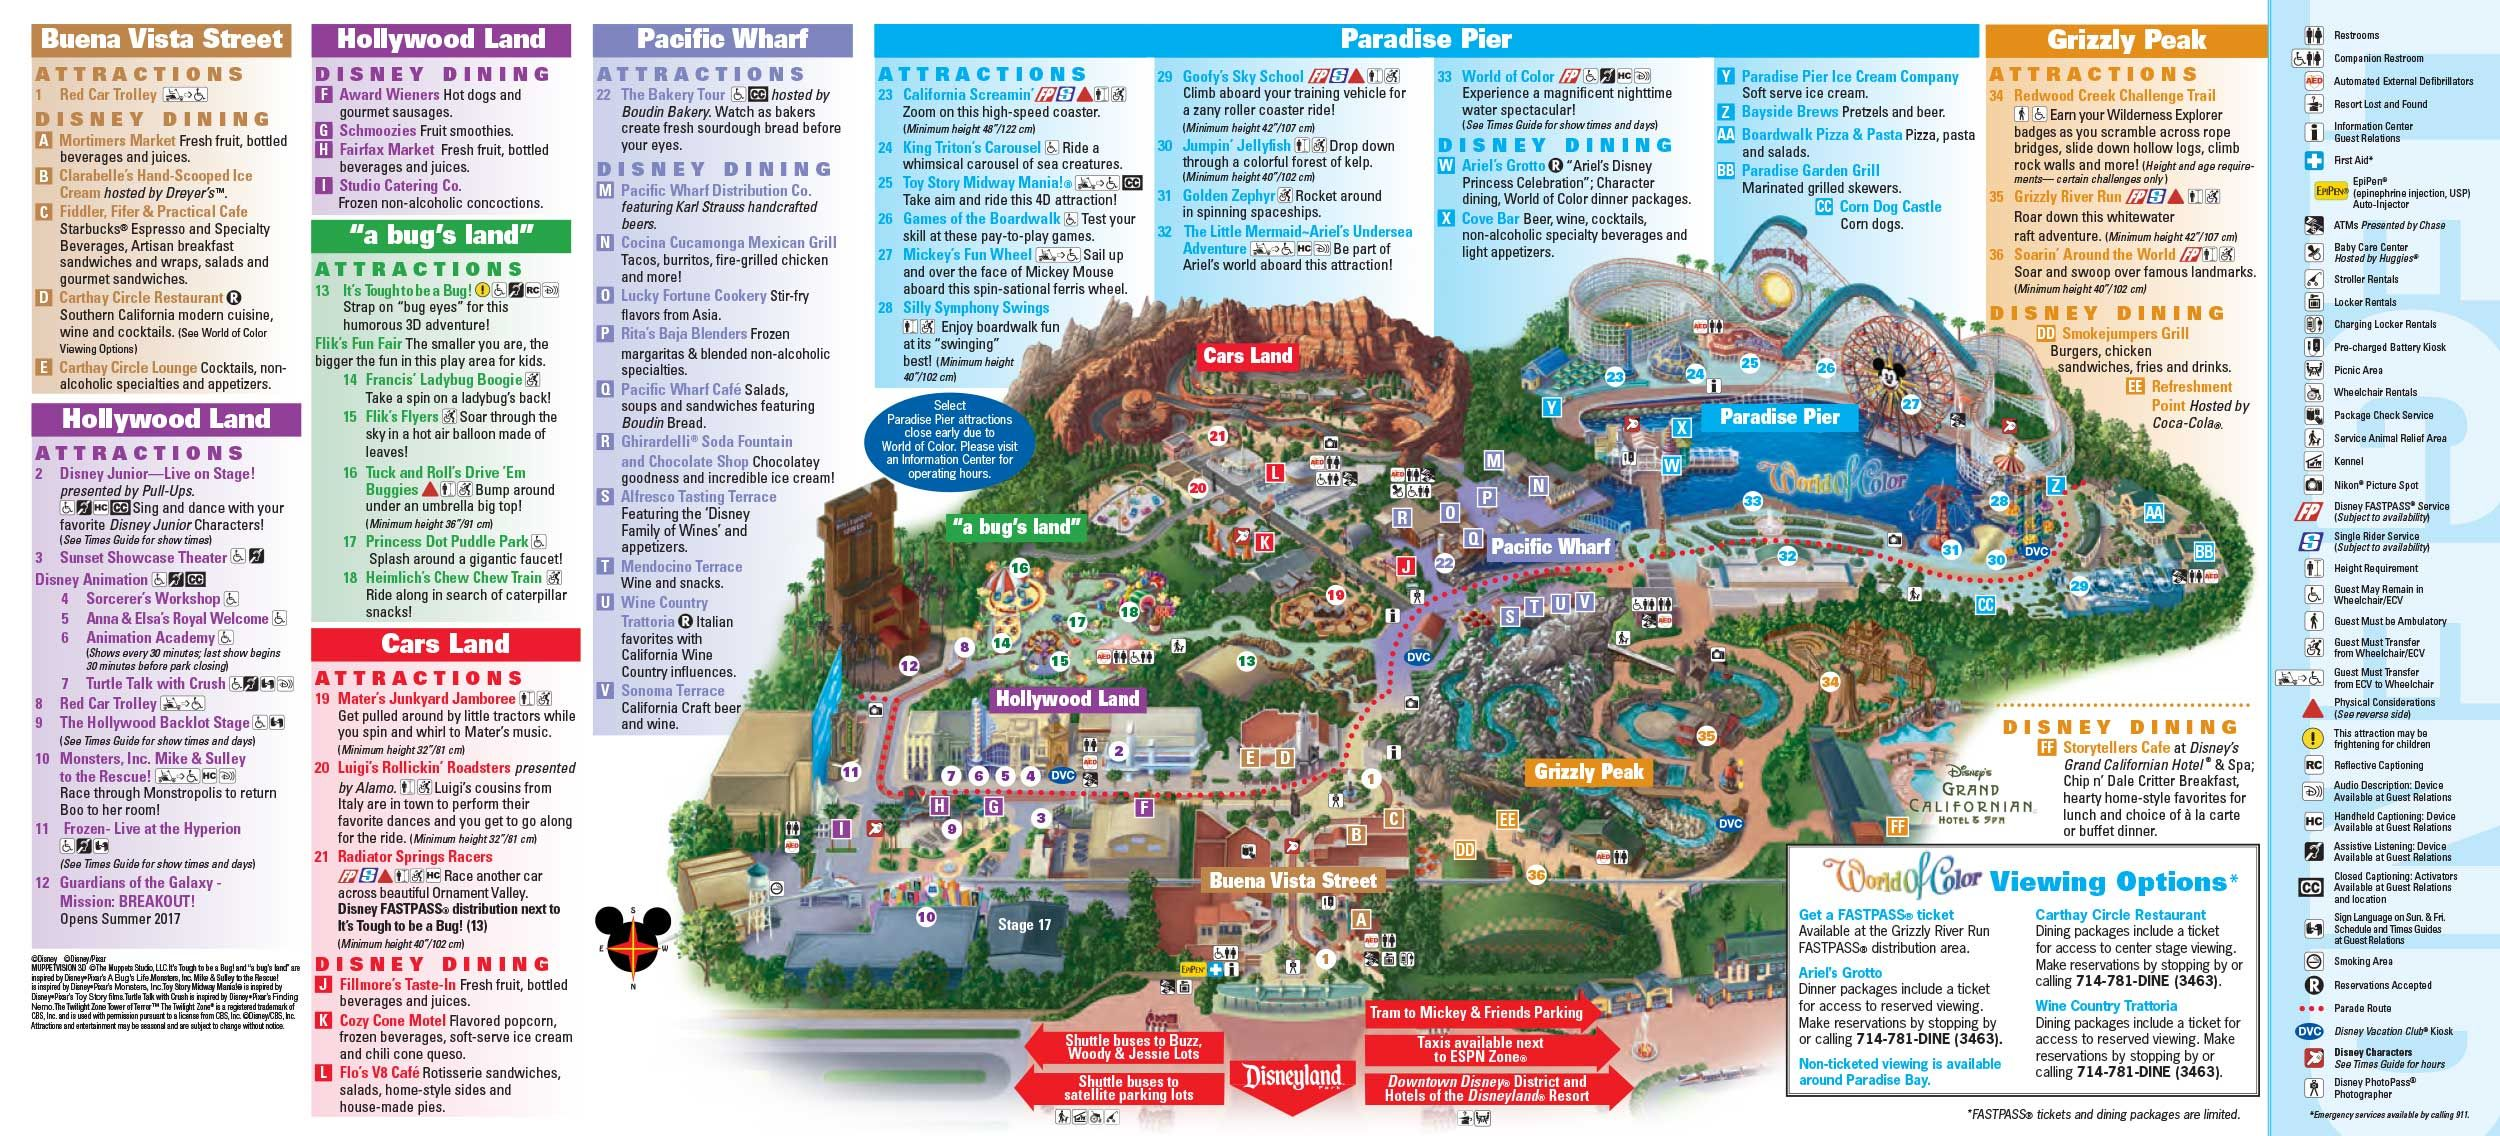 Map Of California Disney.Disneyland Park Map In California Map Of Disneyland Disneyland